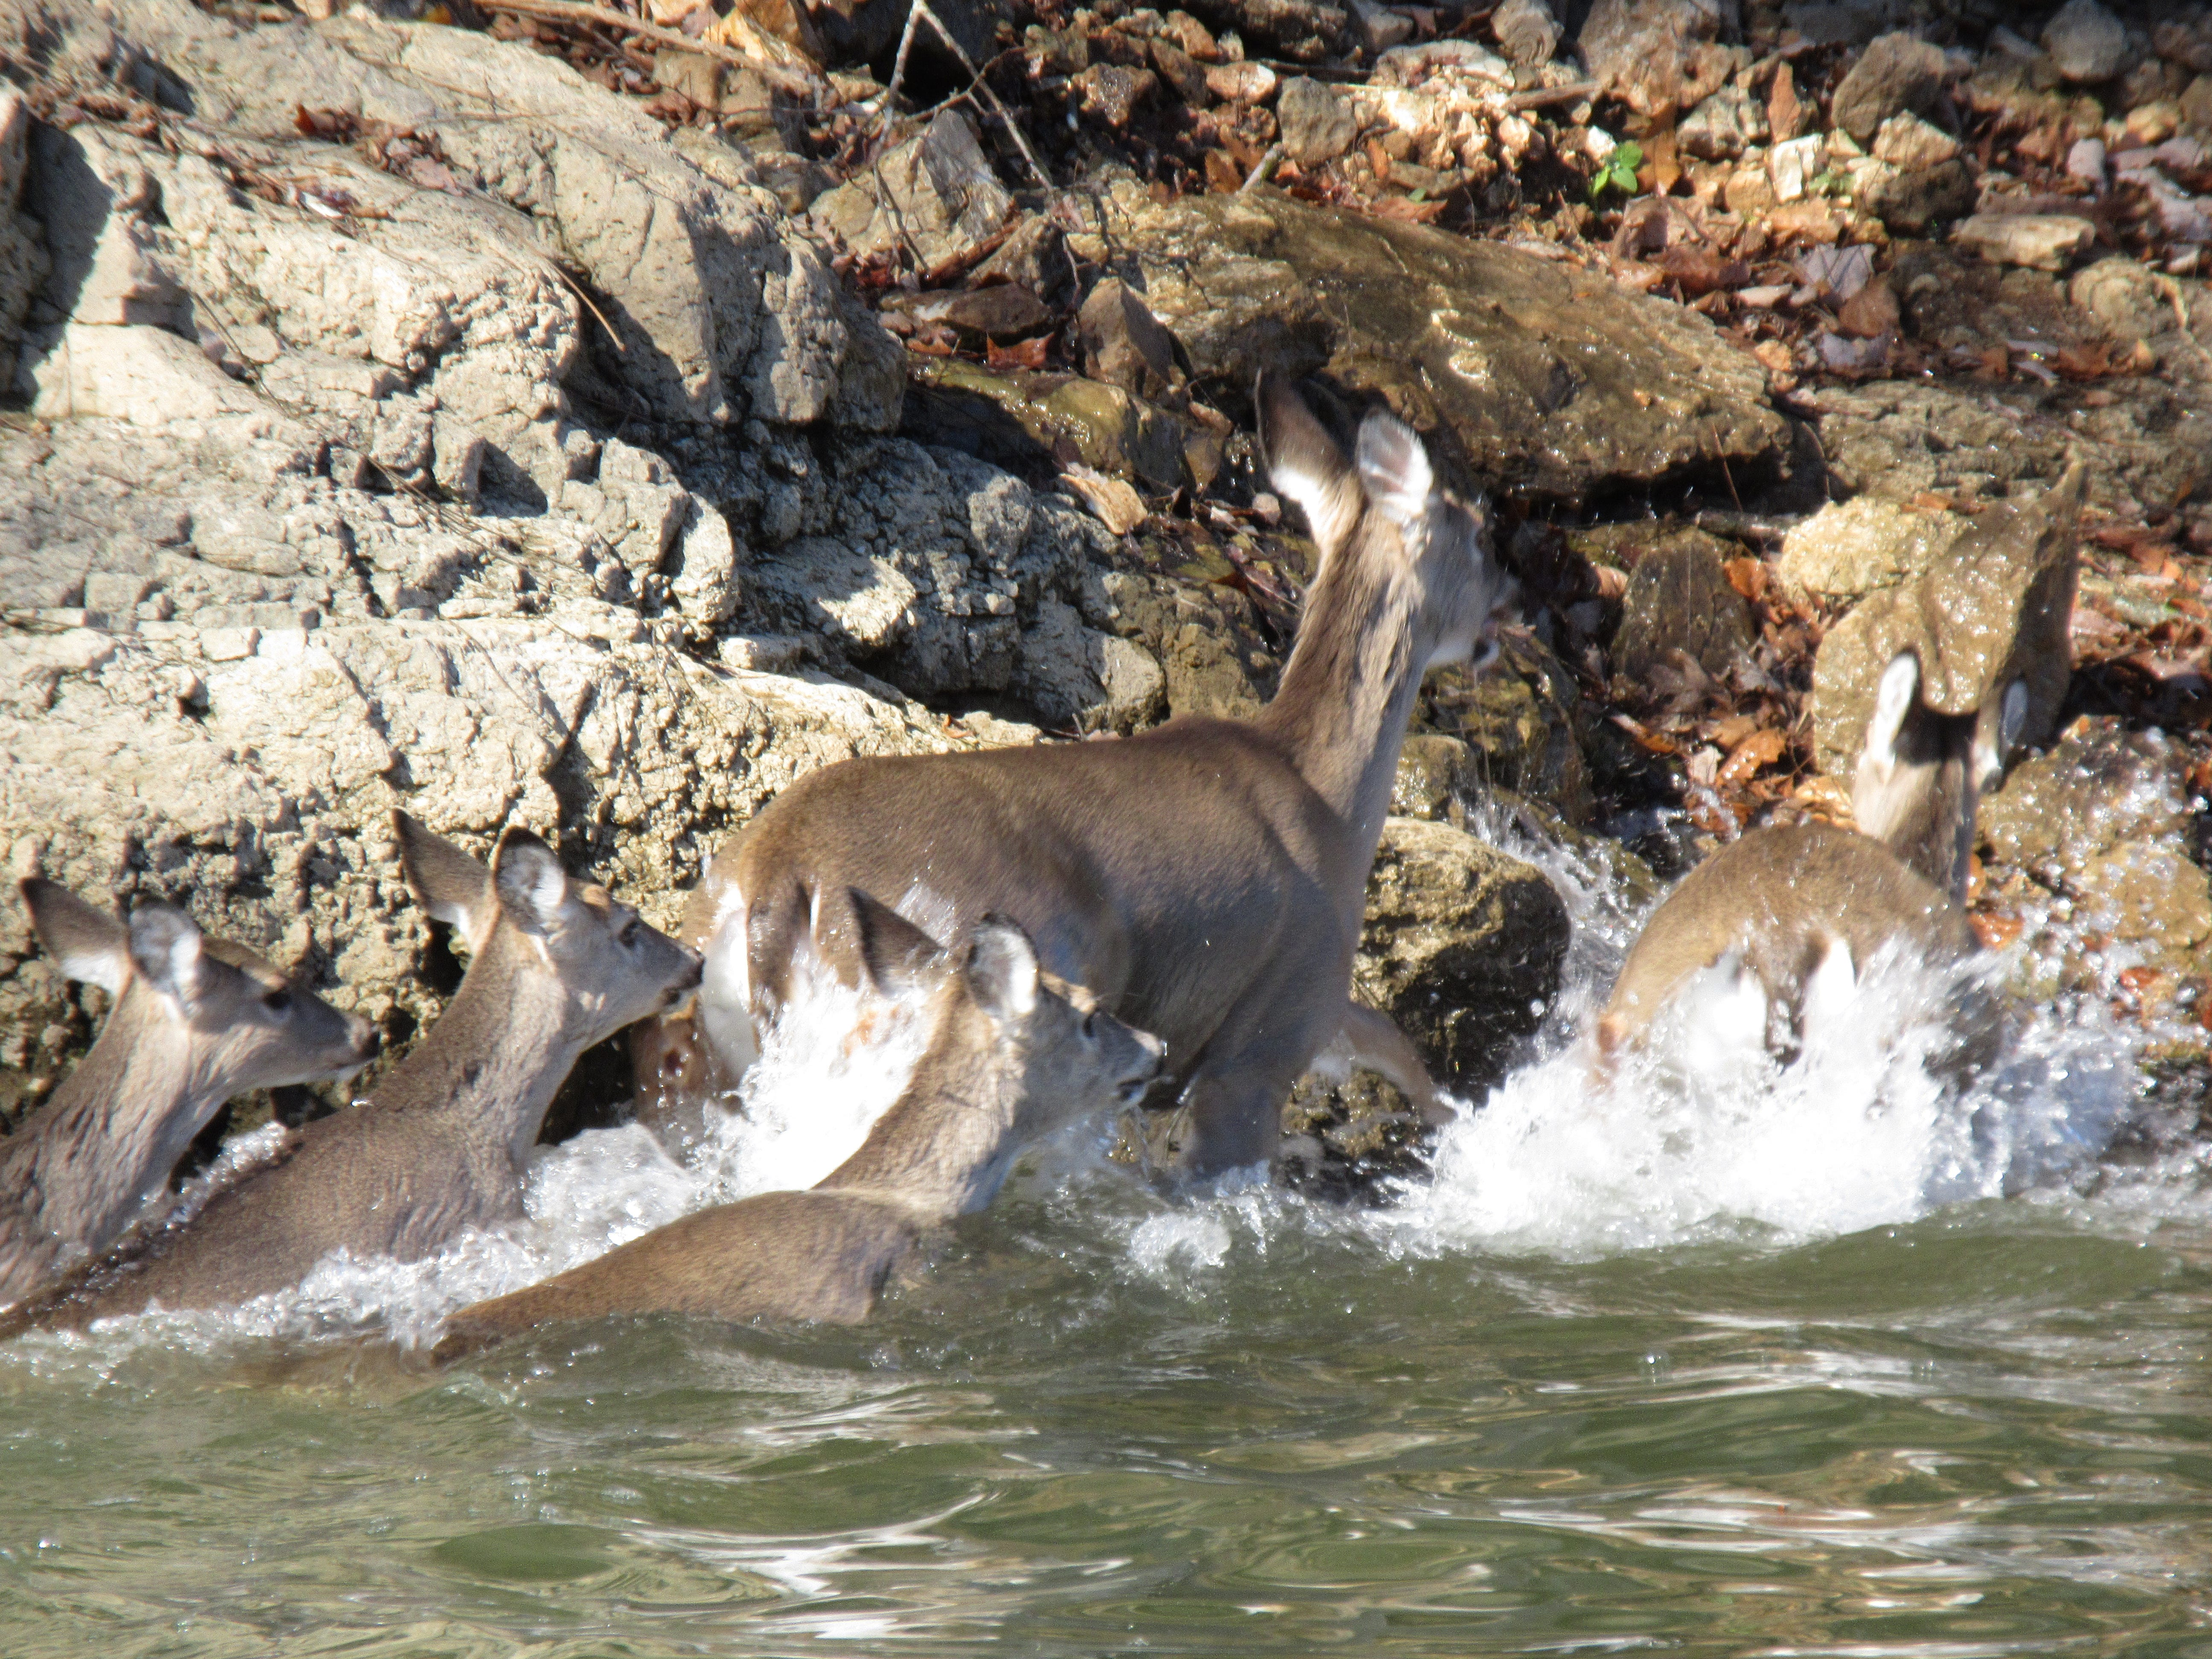 The deer scrambled ashore, leaving an injured buck behind on the other side.